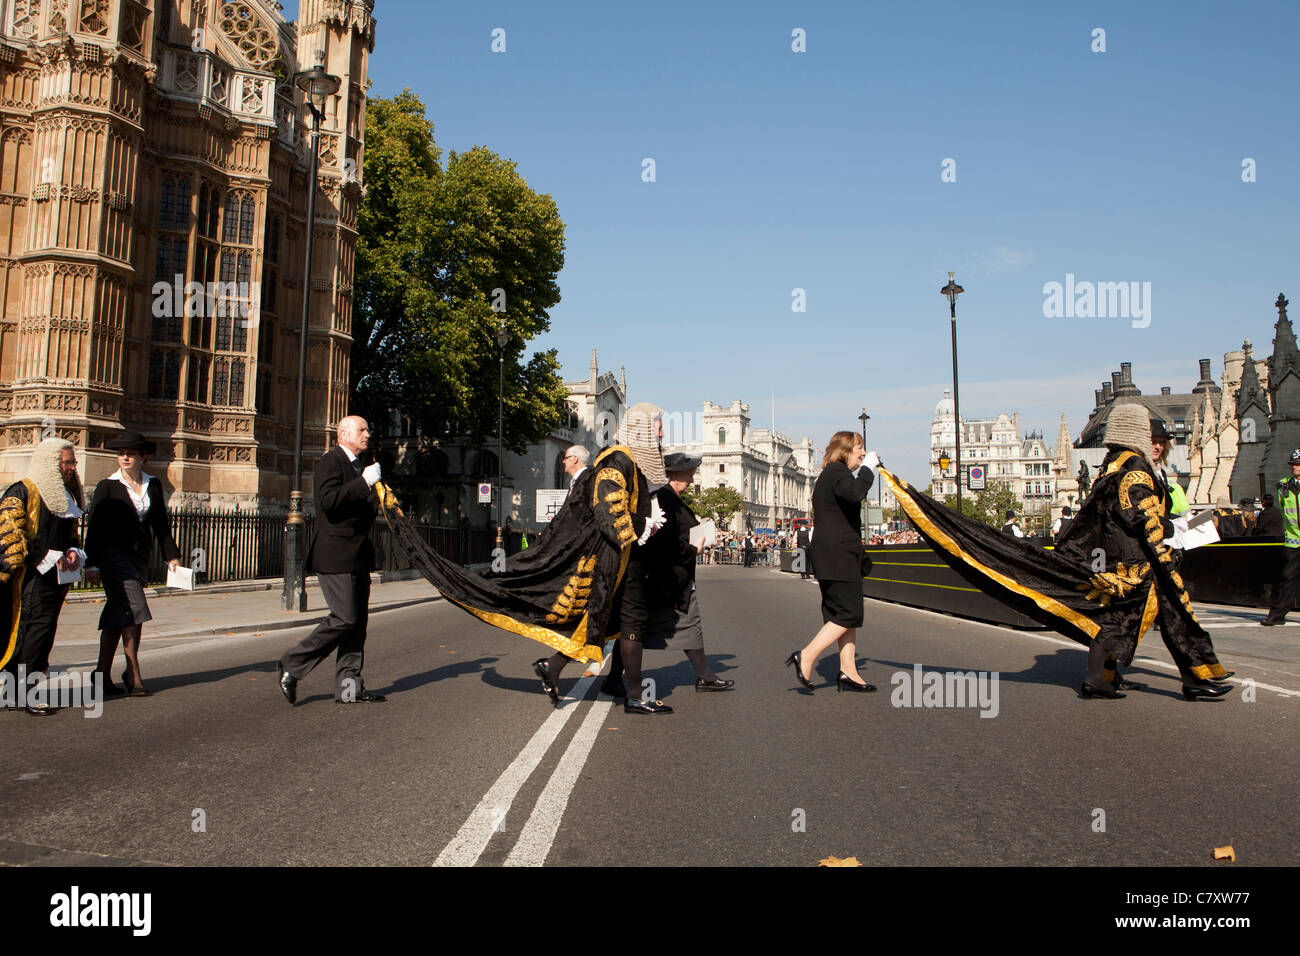 Lord Chancellor's Breakfast. Members of the Judiciary in procession from  Westminster Abbey to Houses of Parliament. - Stock Image